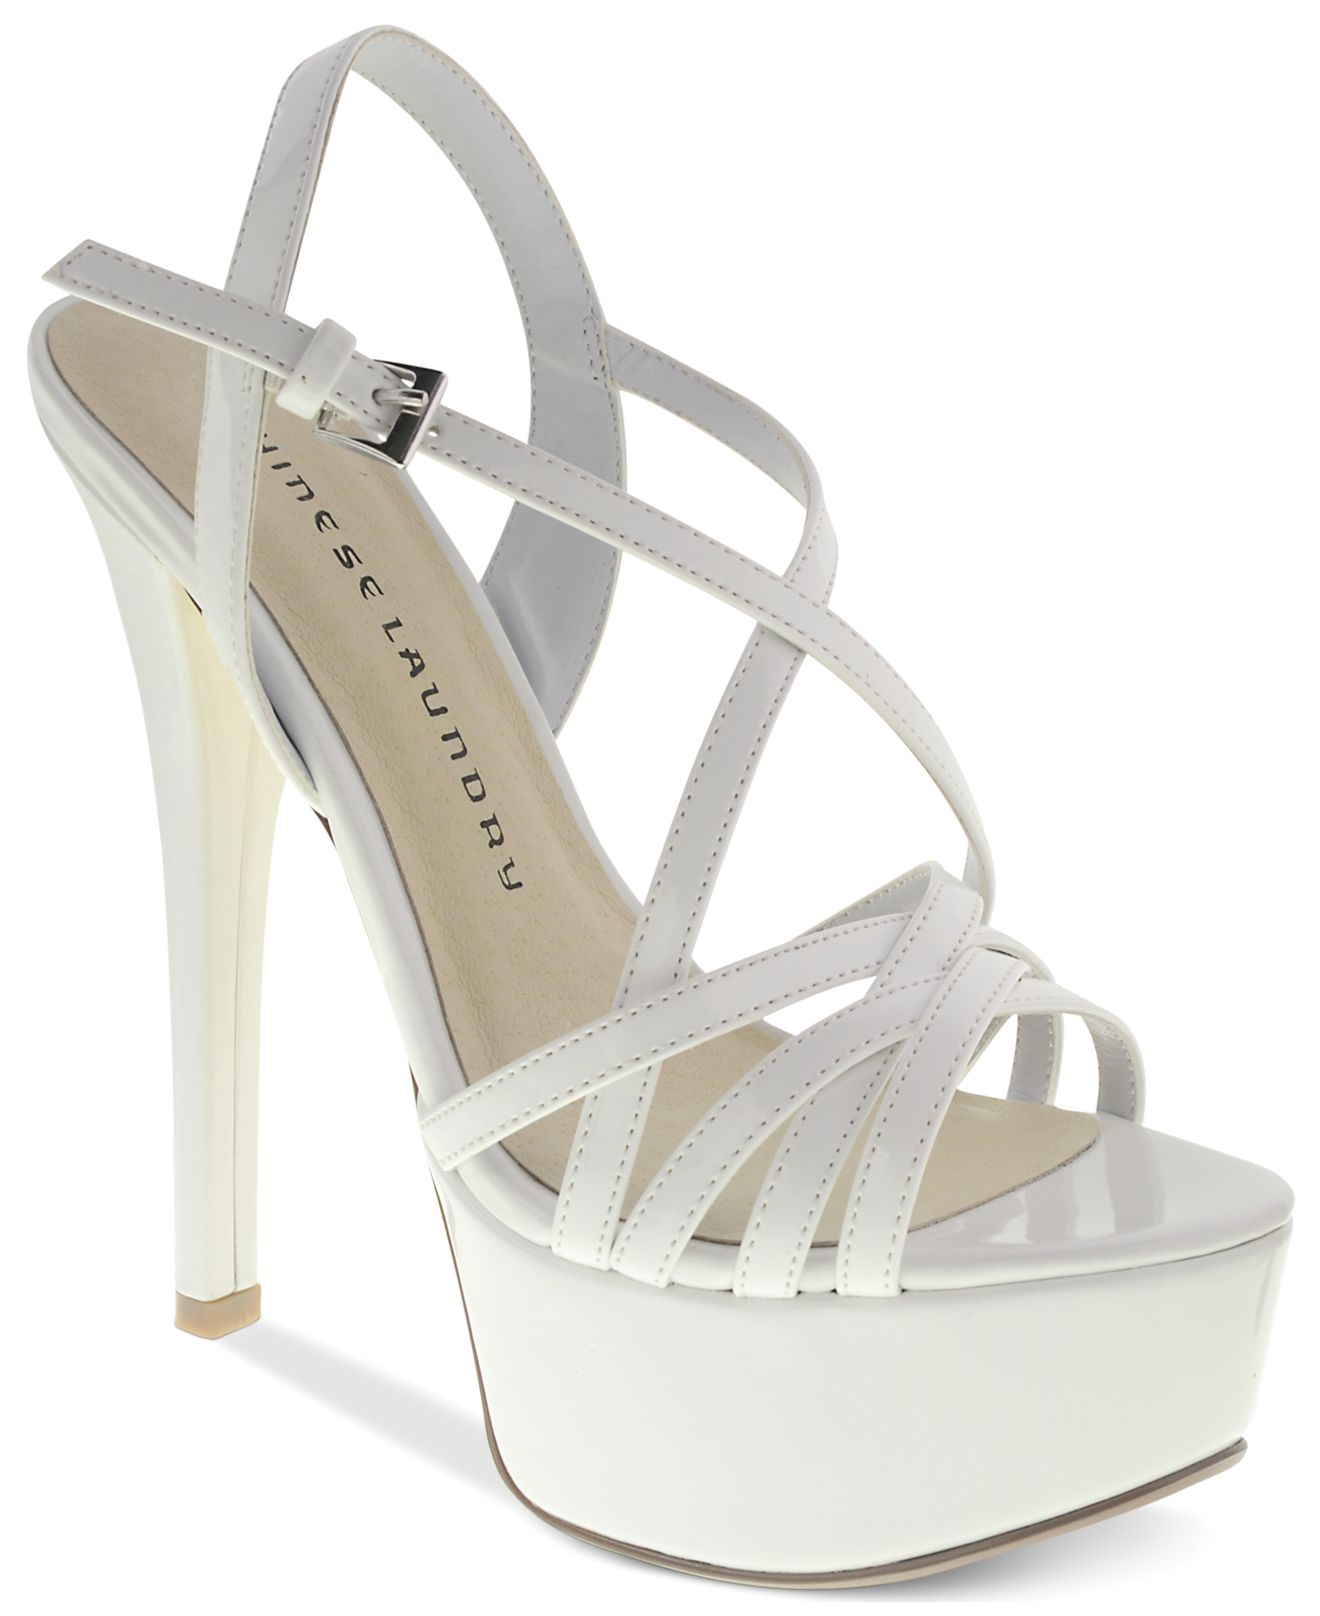 efe775163e0 Lyst - Chinese Laundry Teaser Platform Evening Sandals in White